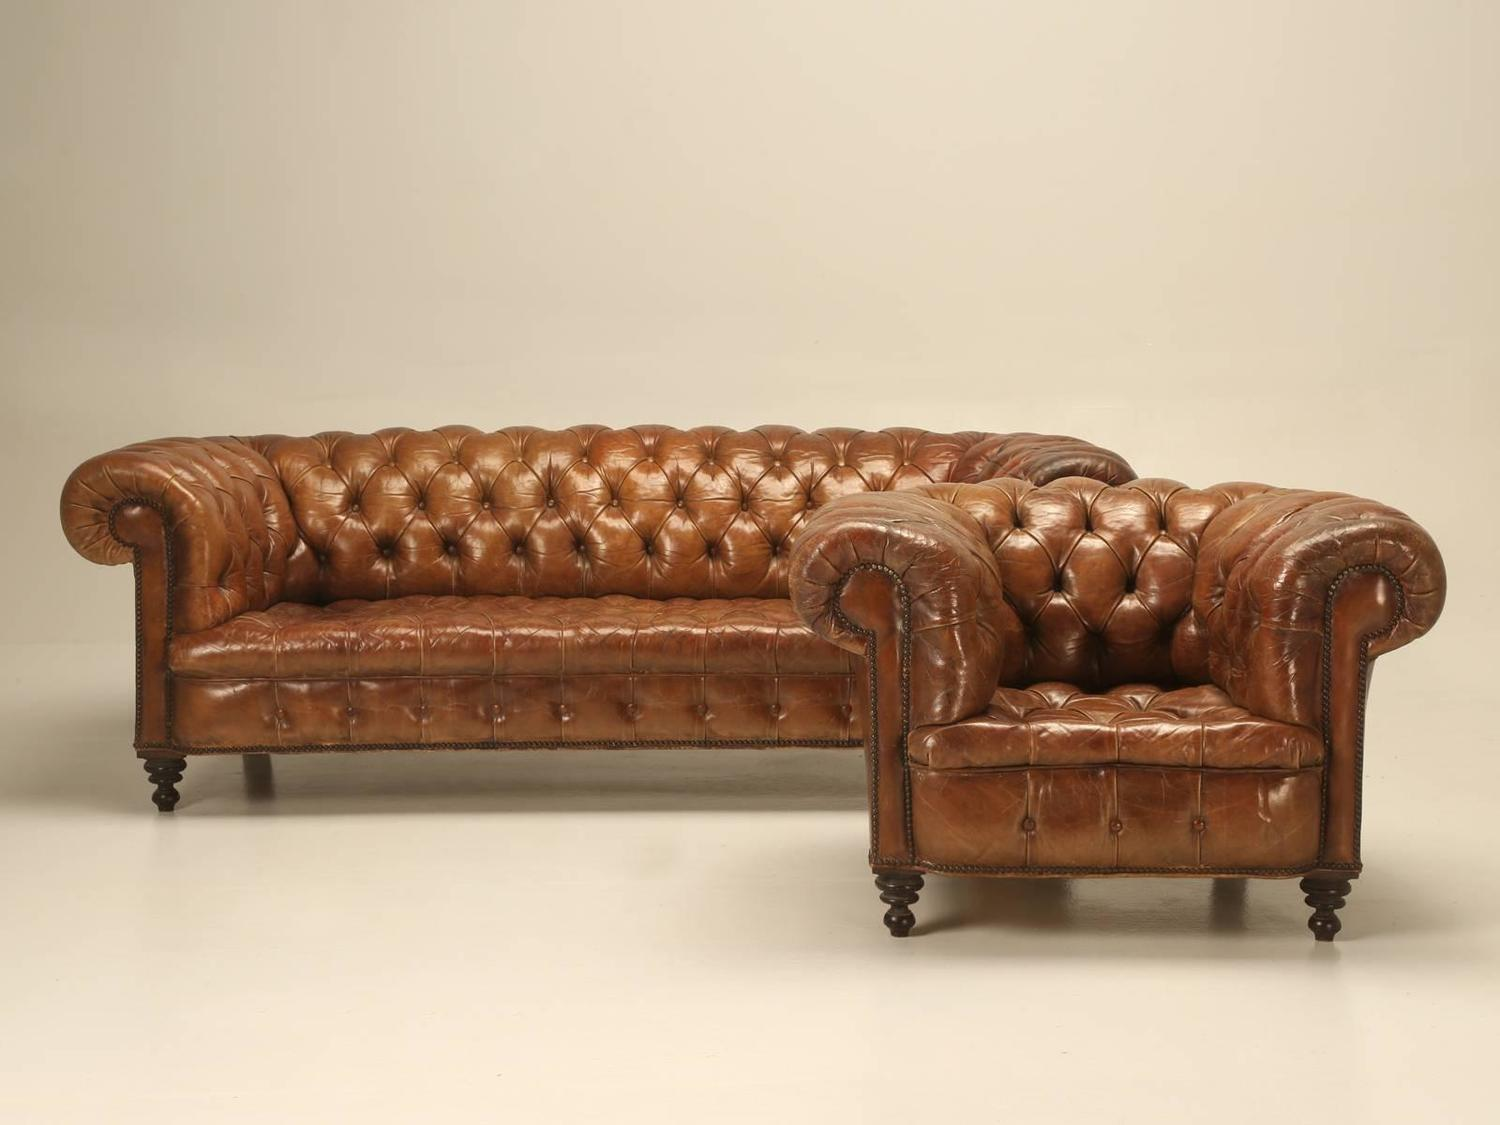 antique leather chesterfield sofa in original leather for sale at 1stdibs. Black Bedroom Furniture Sets. Home Design Ideas